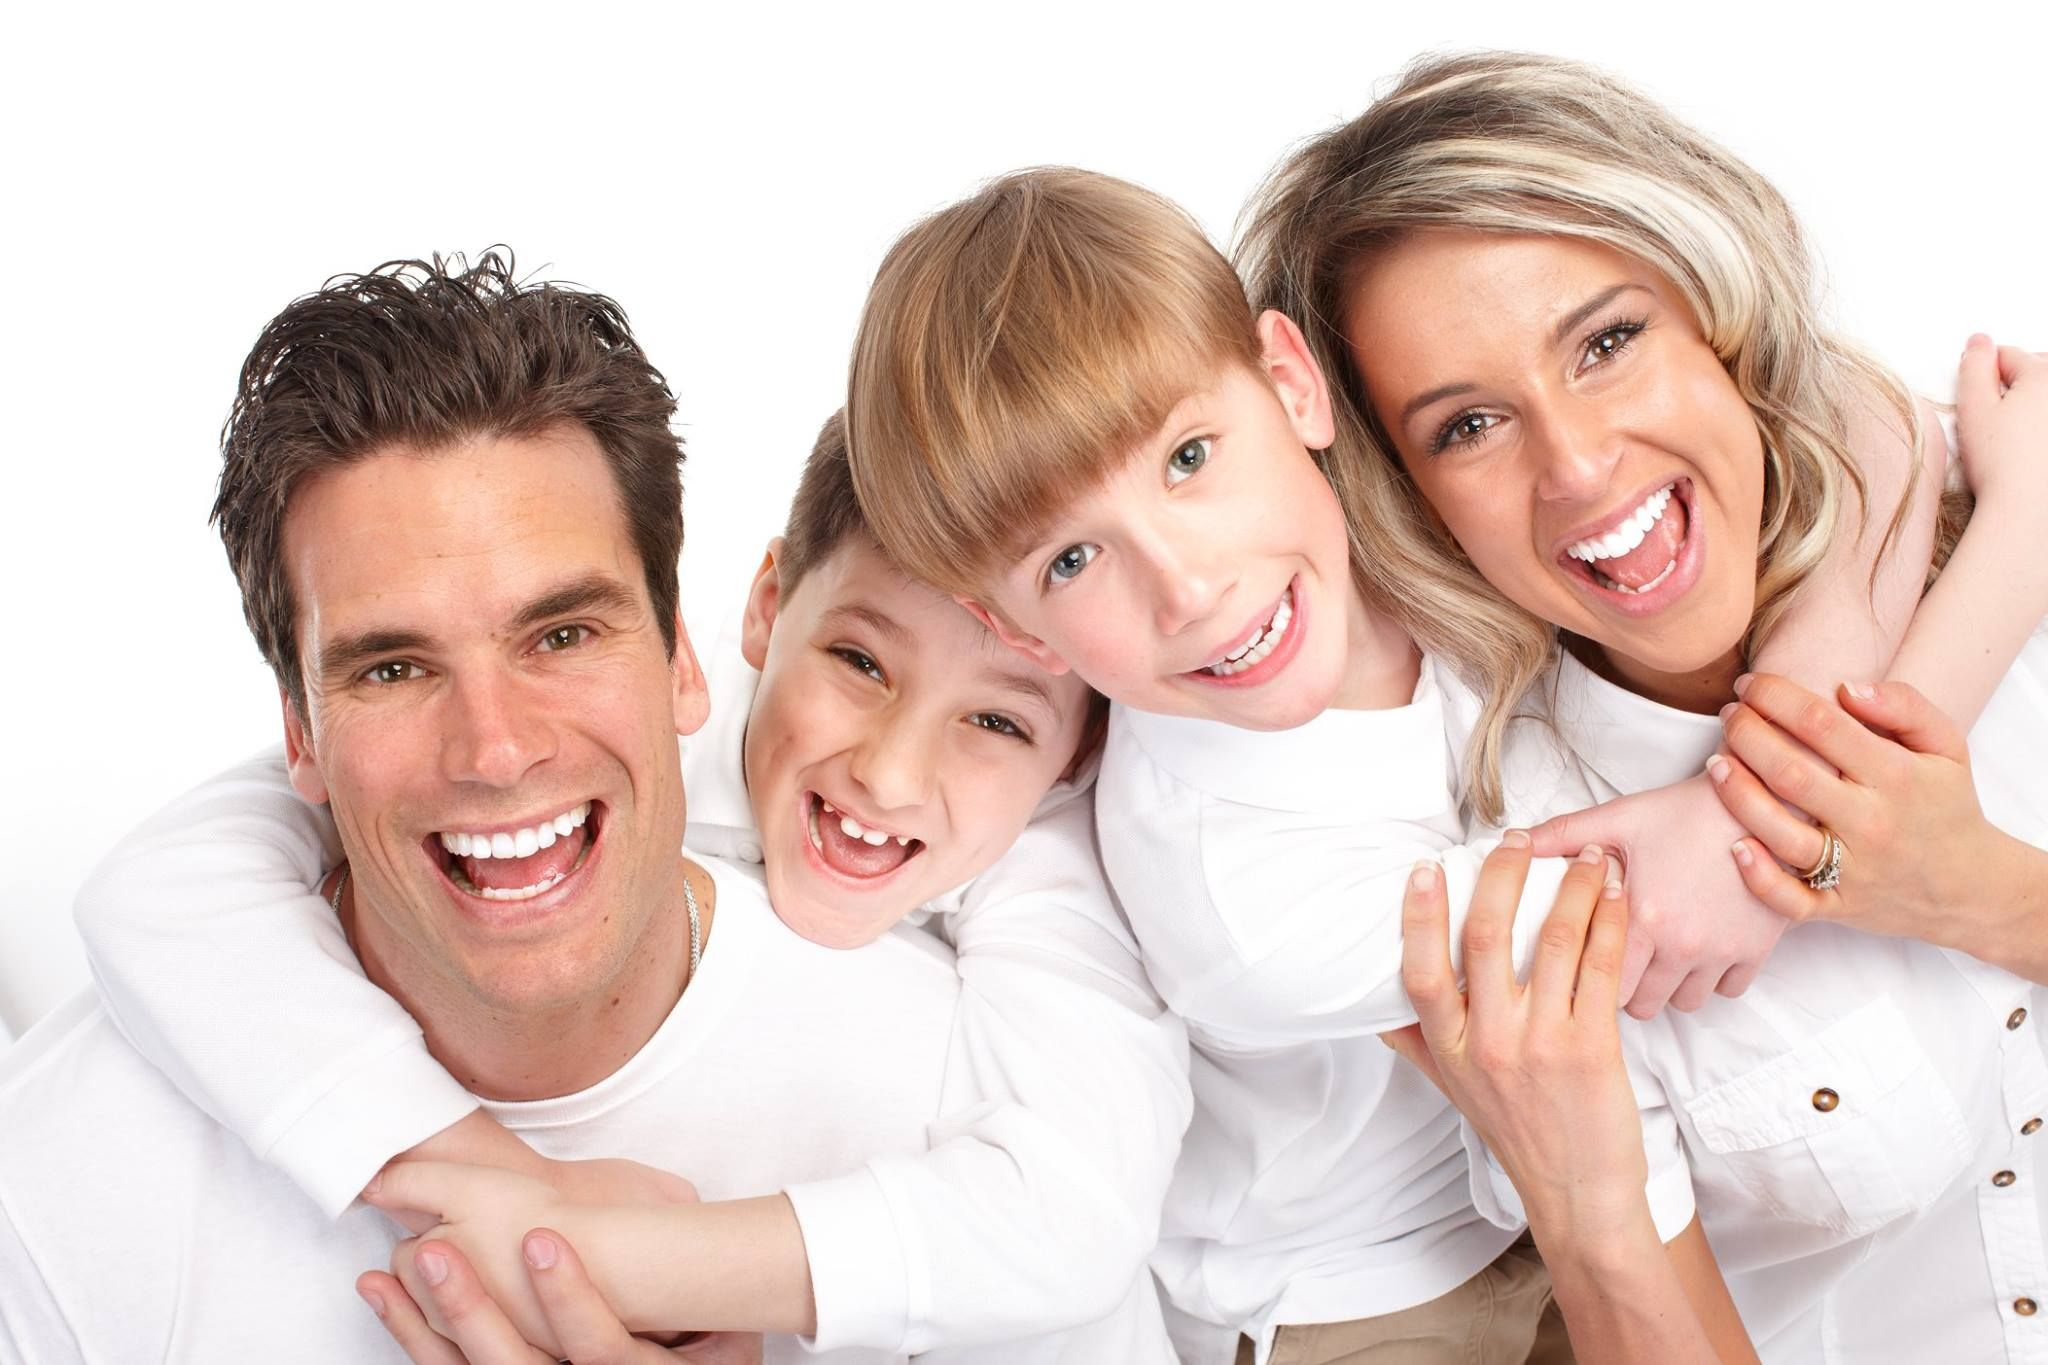 Happy Family Day! What are your plans for your family